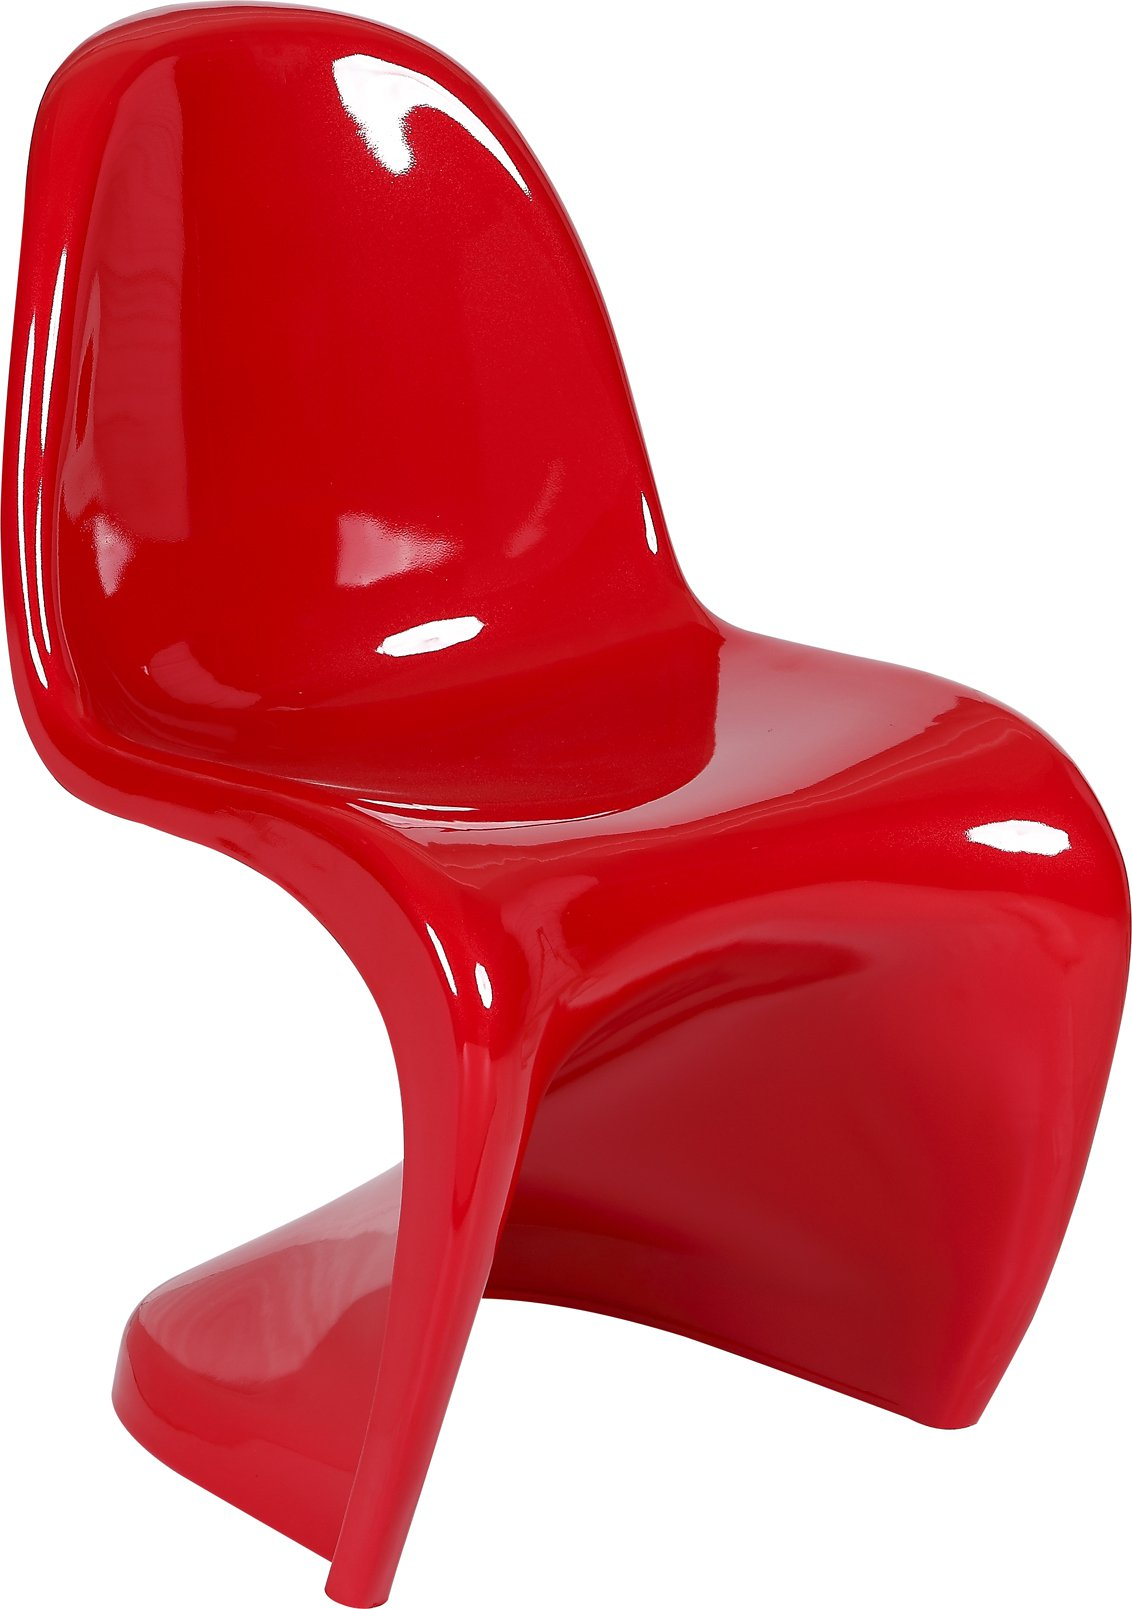 Chaise plastique design le monde de l a for Chaise design plastique